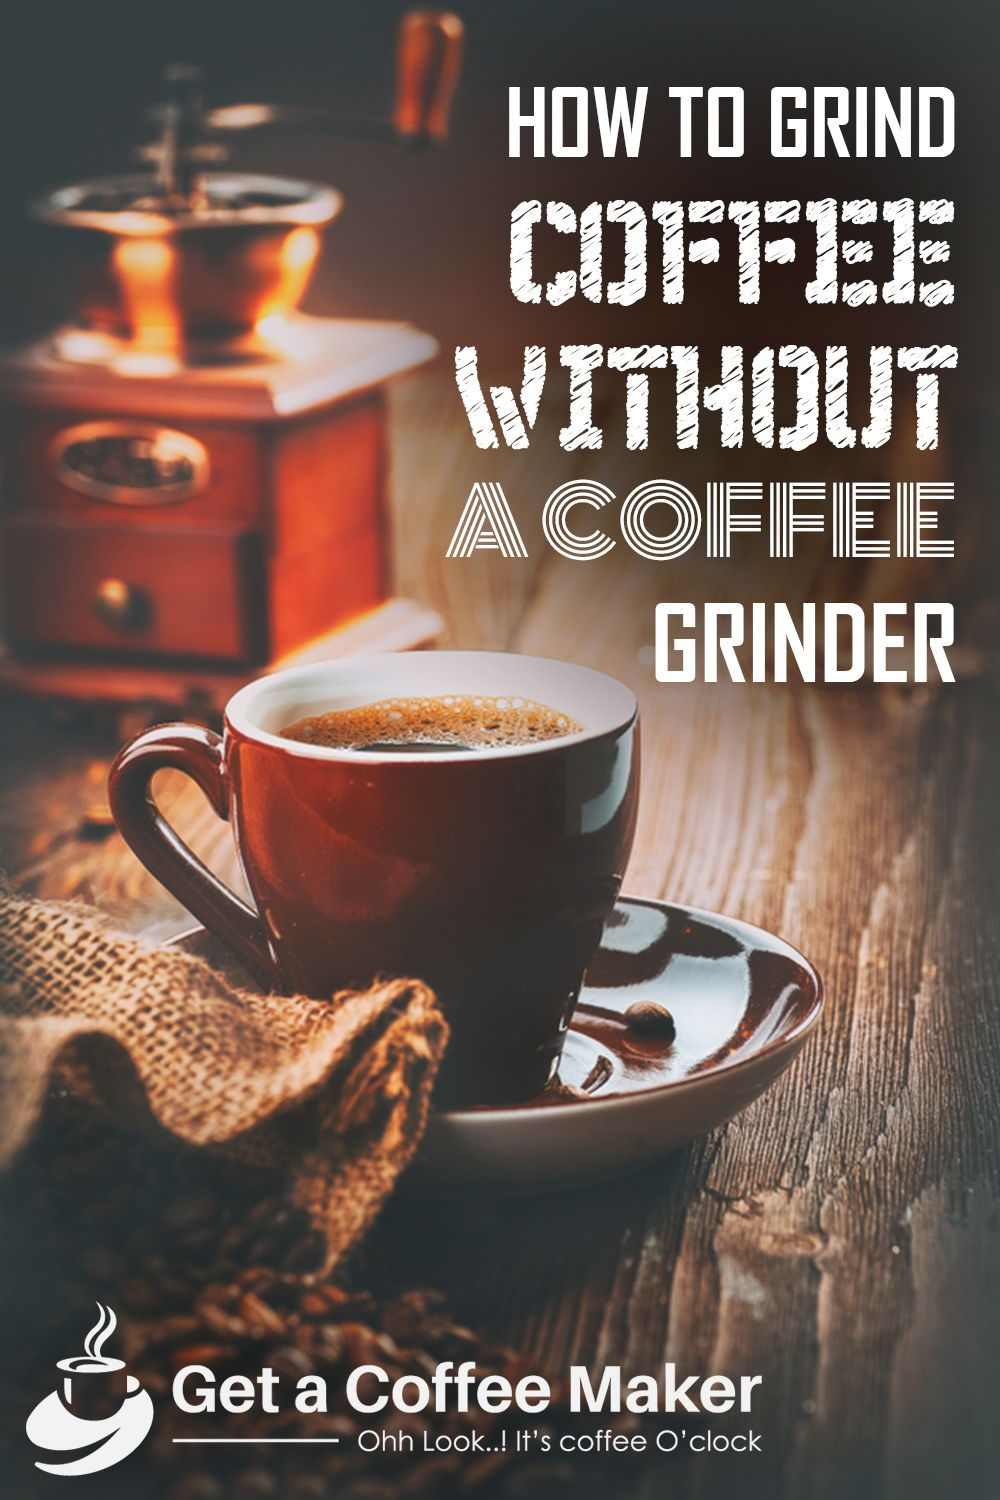 How to Grind Coffee in a simplistic way without a Coffee